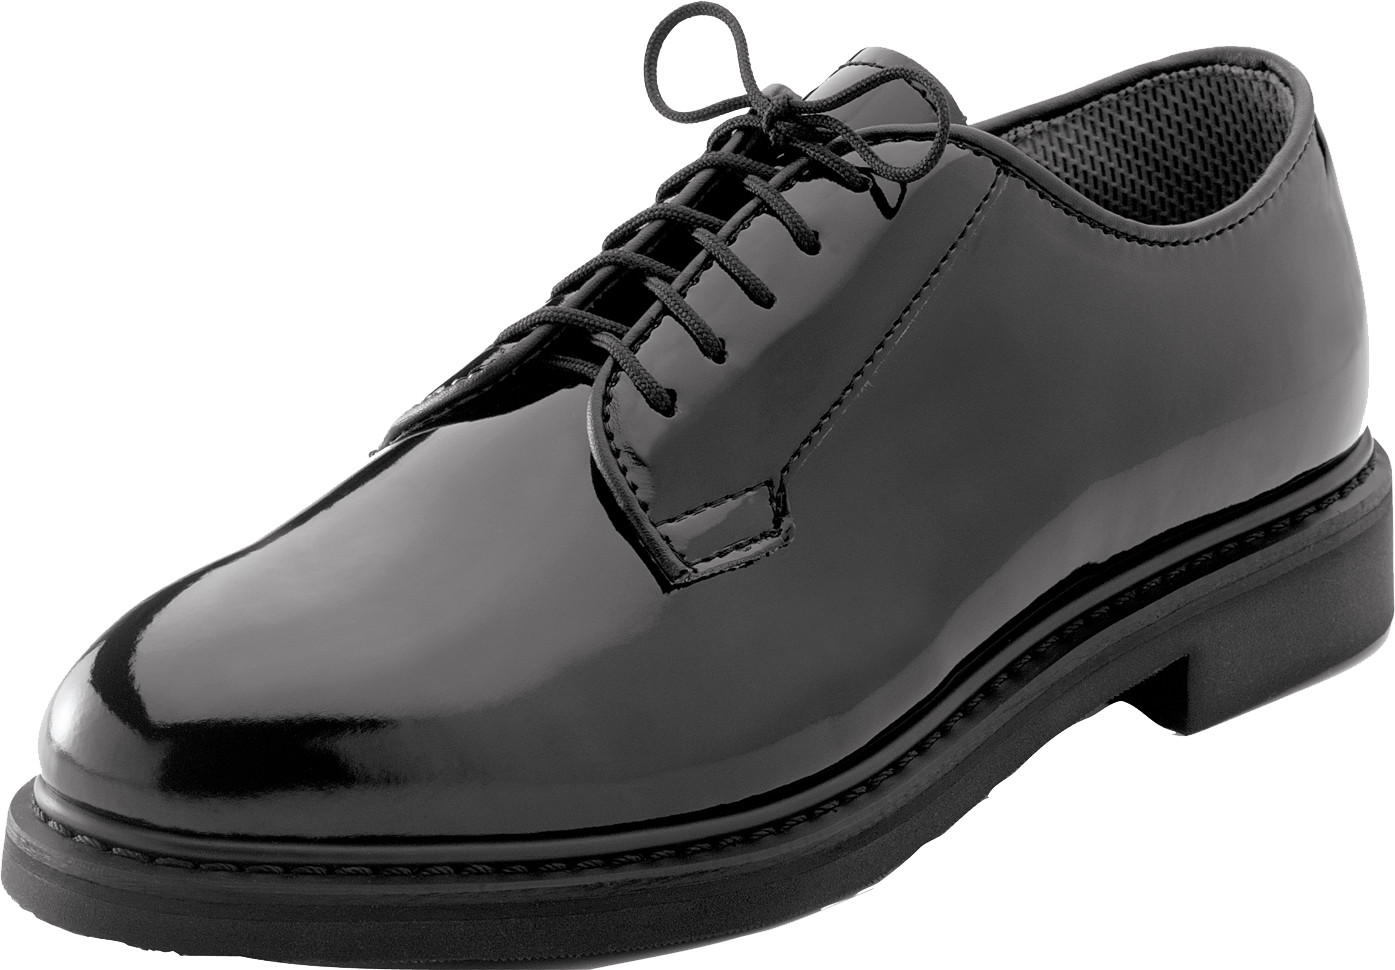 More Views. Black Hi-Gloss Shiny Lightweight Military Uniform Oxford Shoes  ... 08be2ca64ca